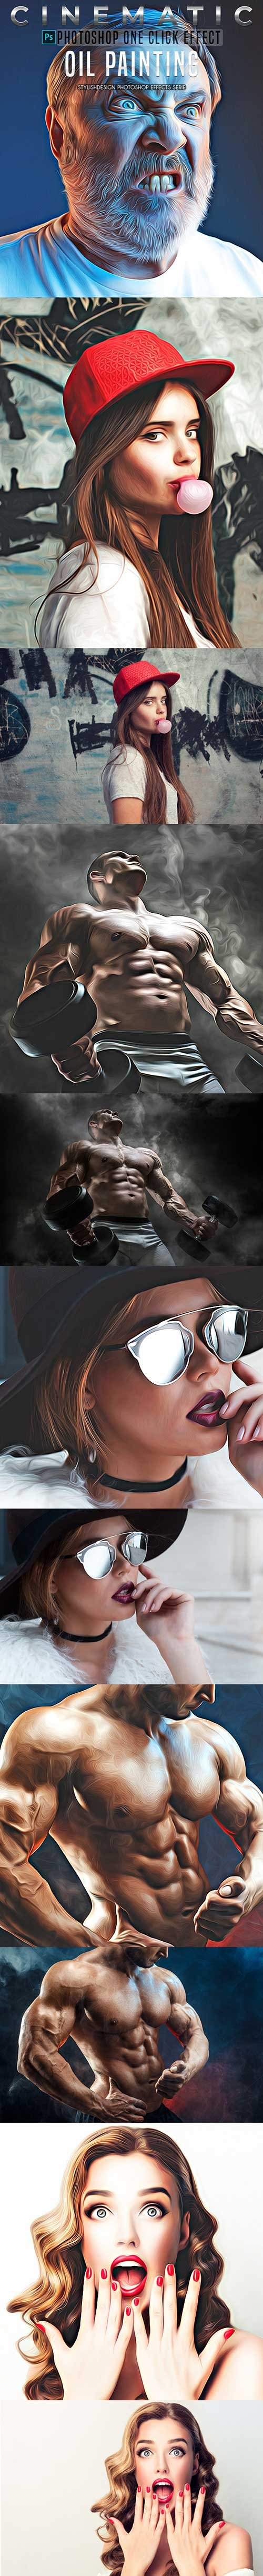 GraphicRiver - Oil Painting Photoshop Actions 22575133